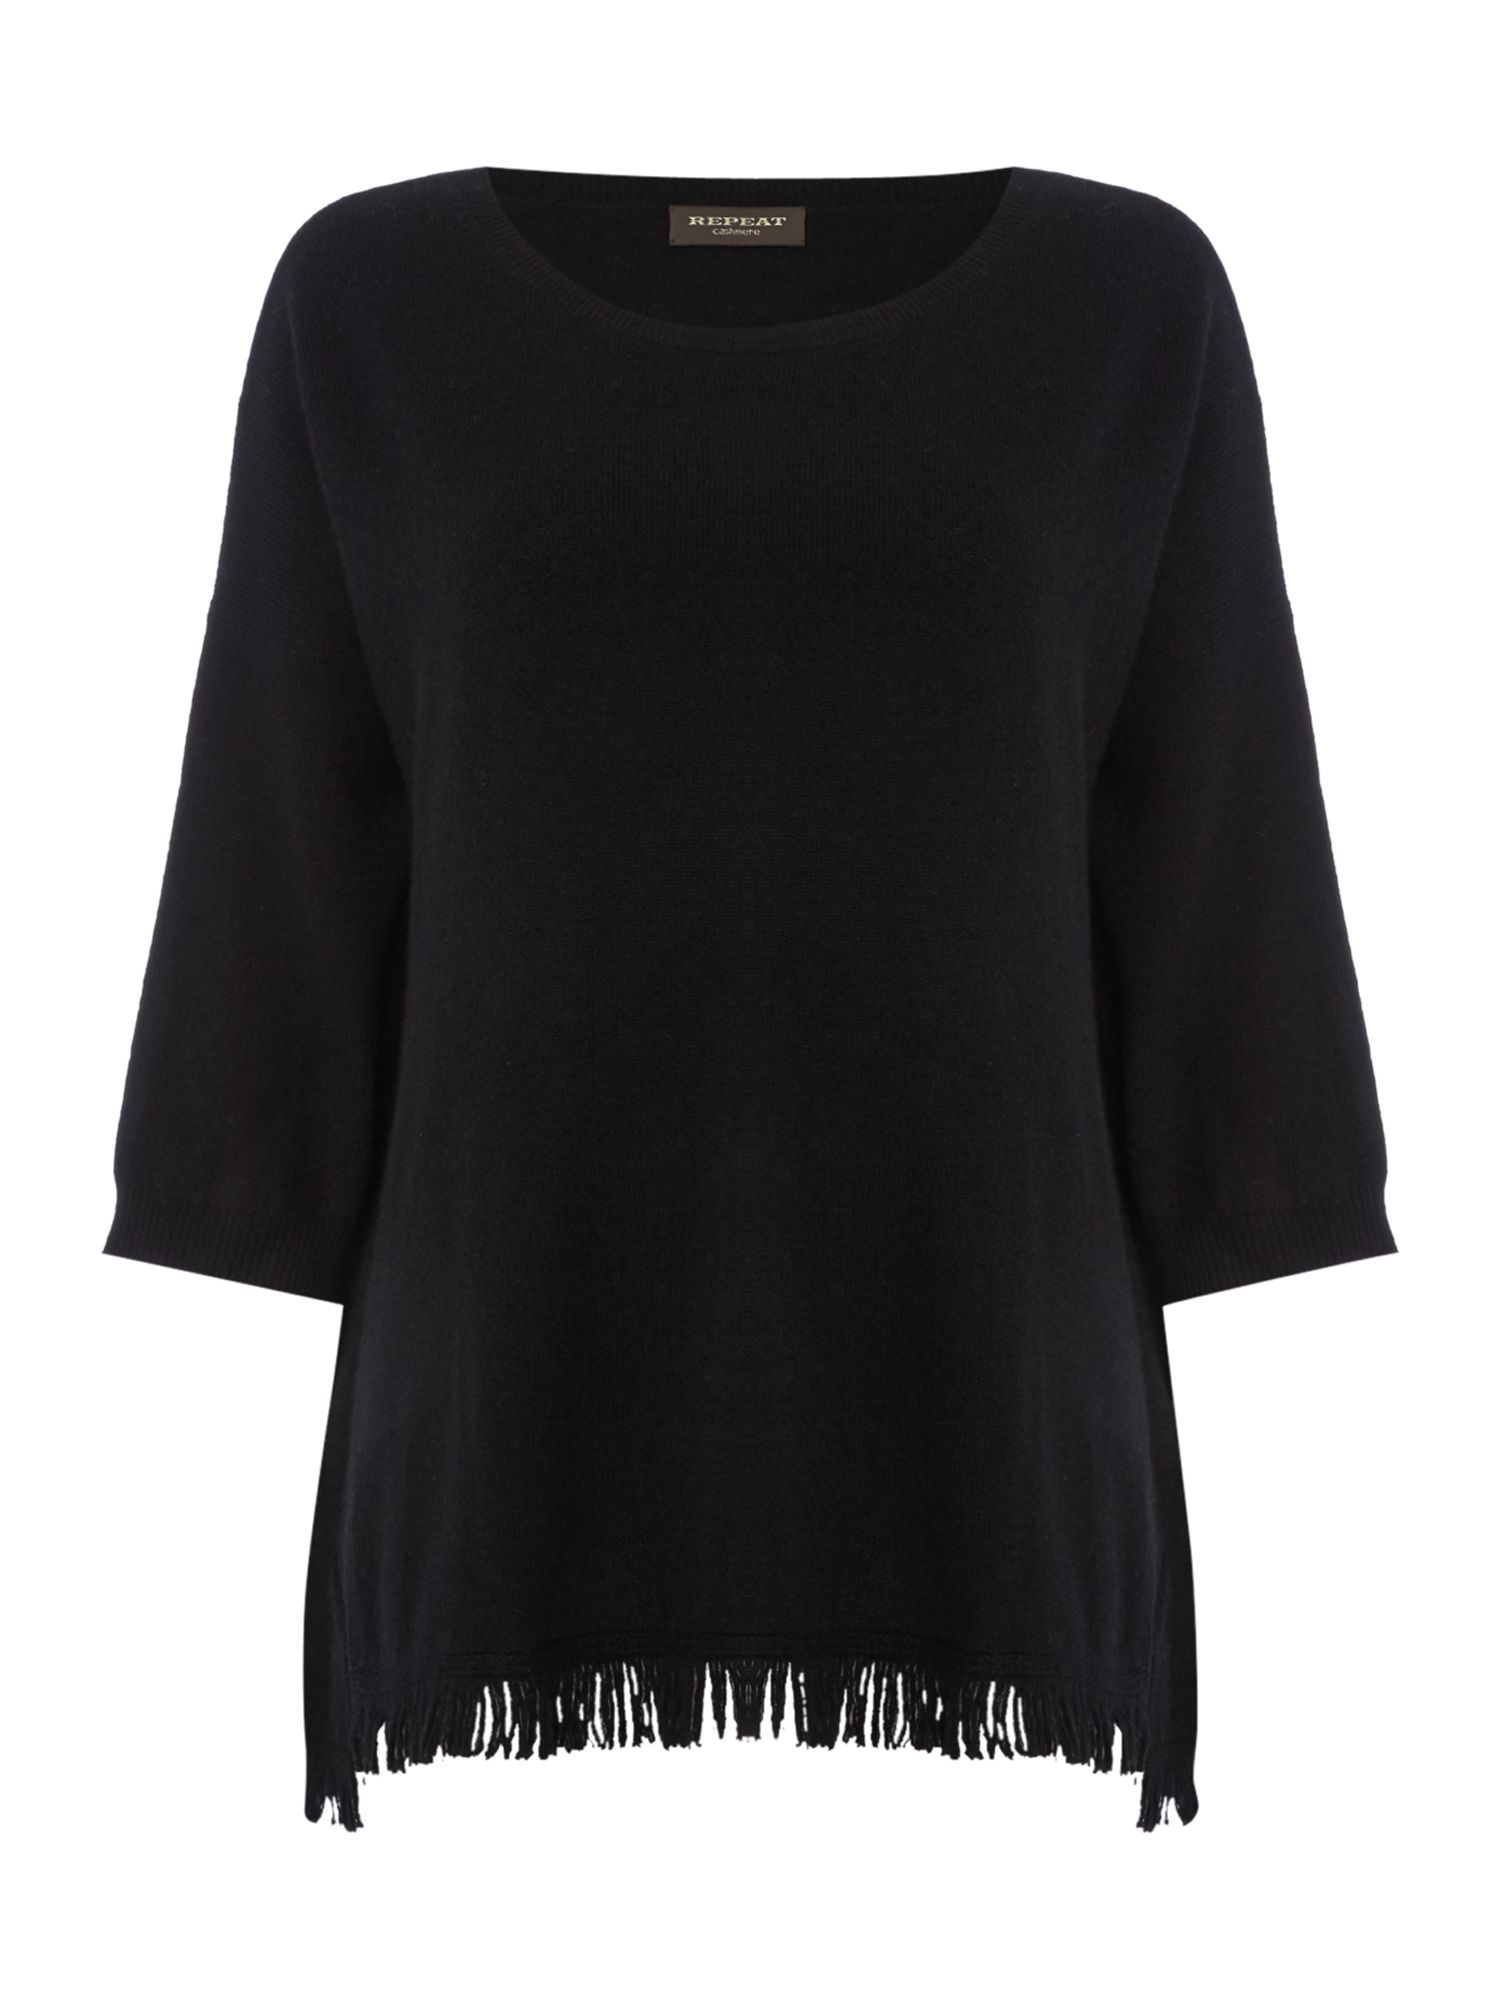 Repeat Cashmere Repeat Cashmere Round neck fringed bottom jumper, Black